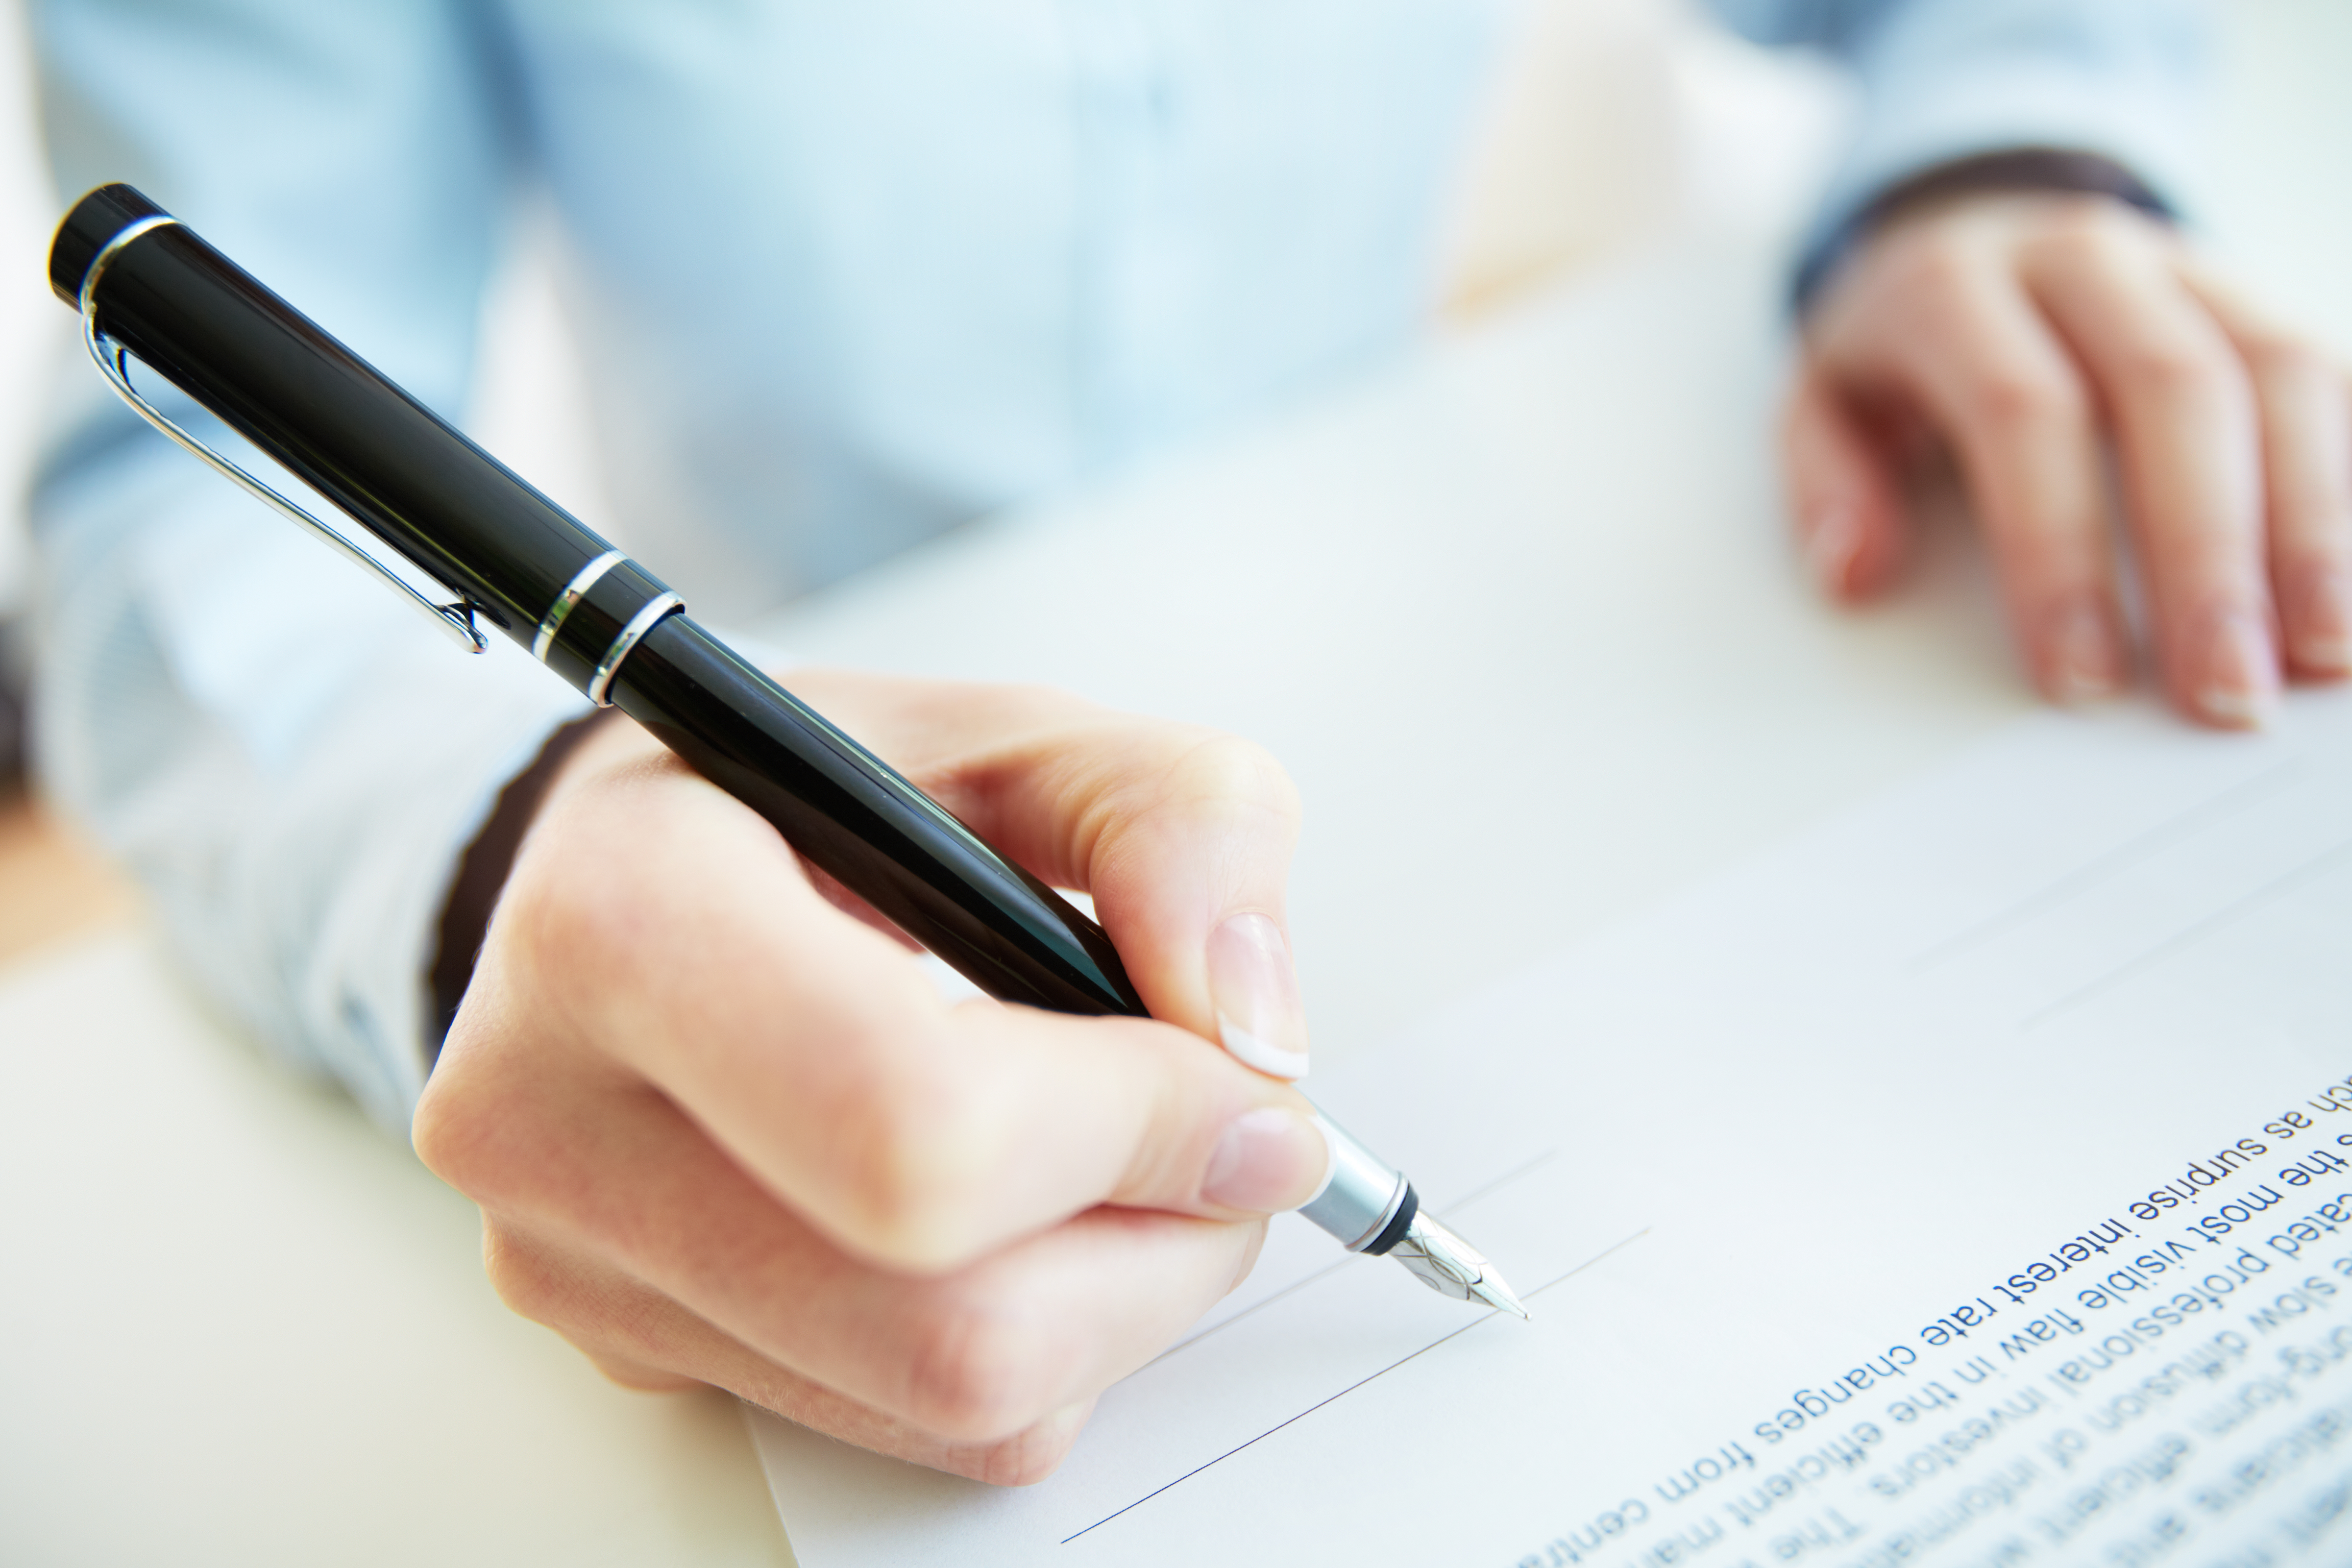 Close-up image of GPs putting their signature to a contract